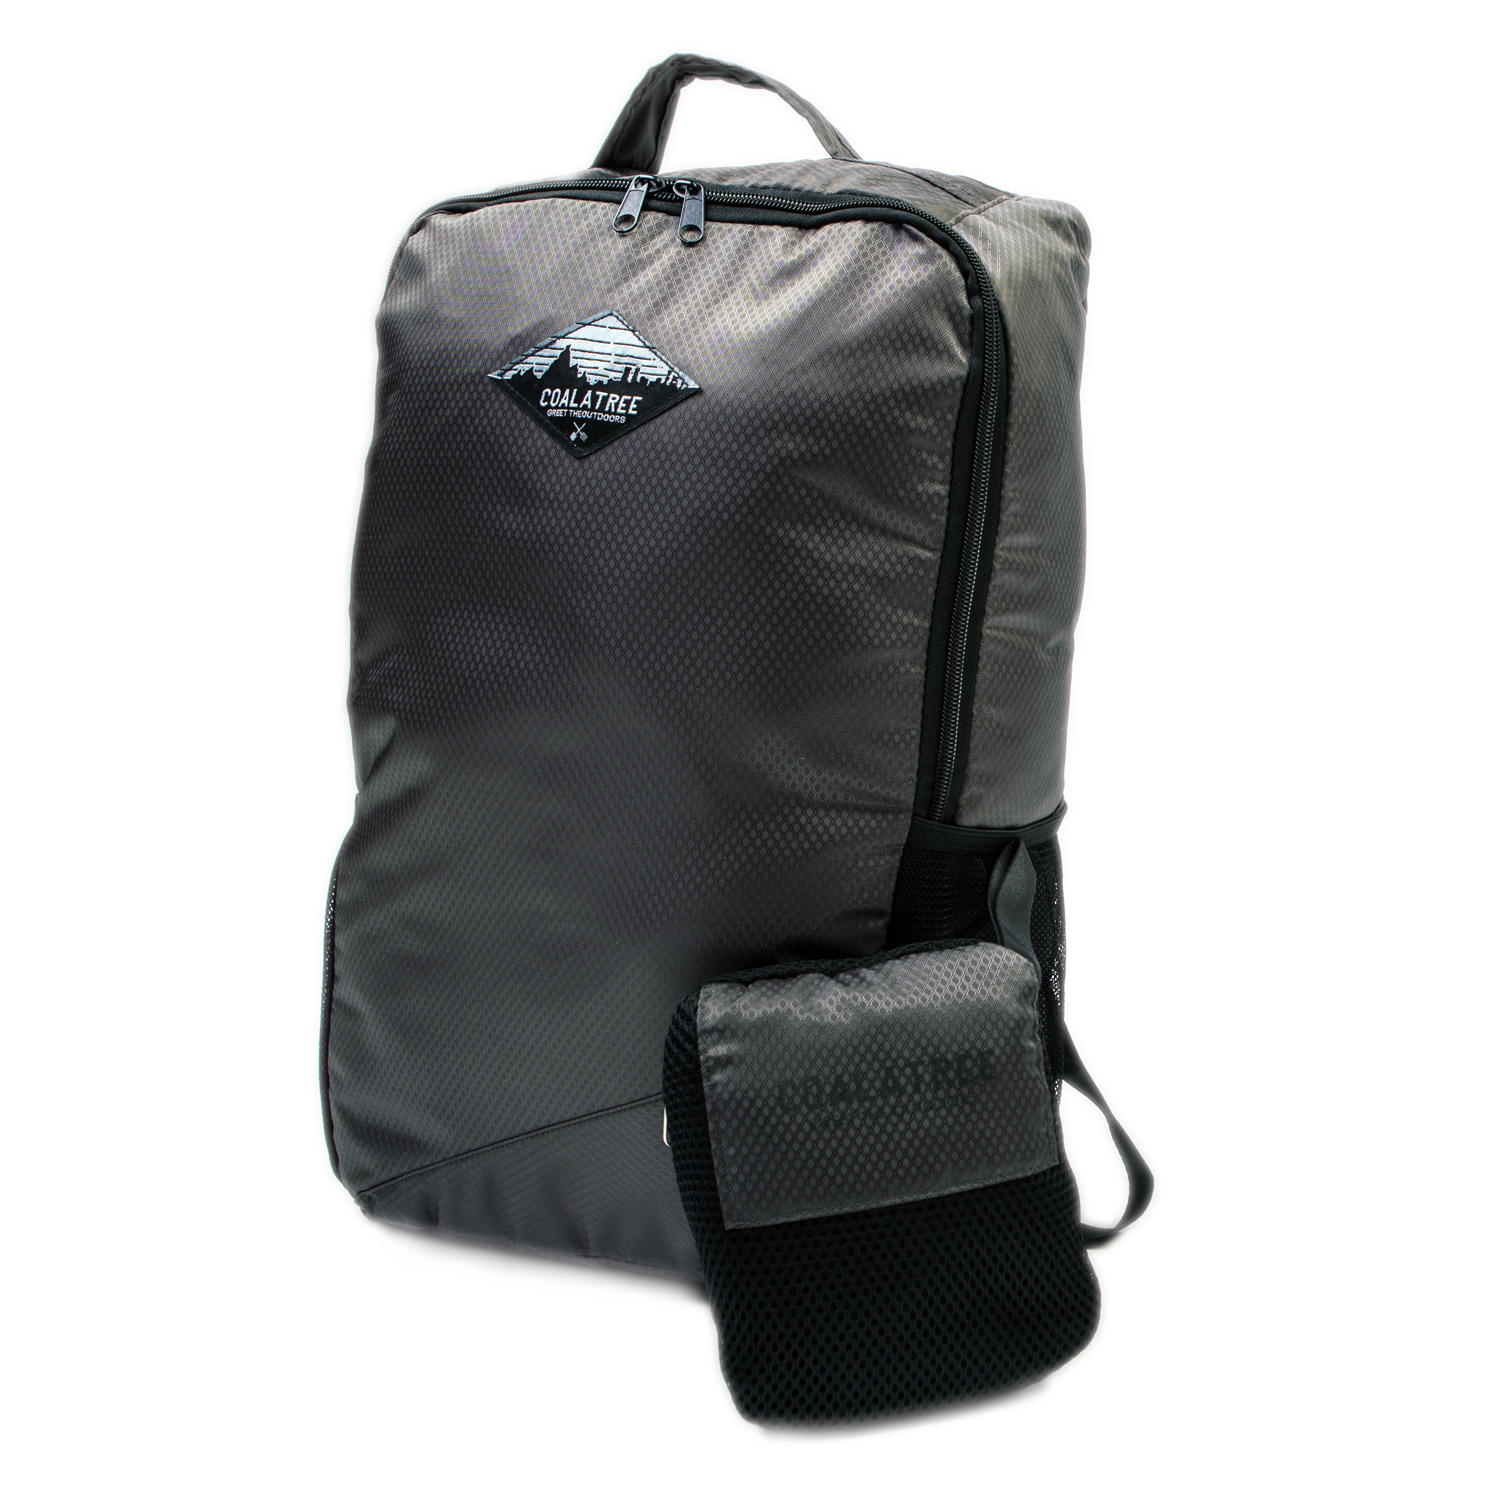 Shop the Nomad Packable Backpack By Coalatree